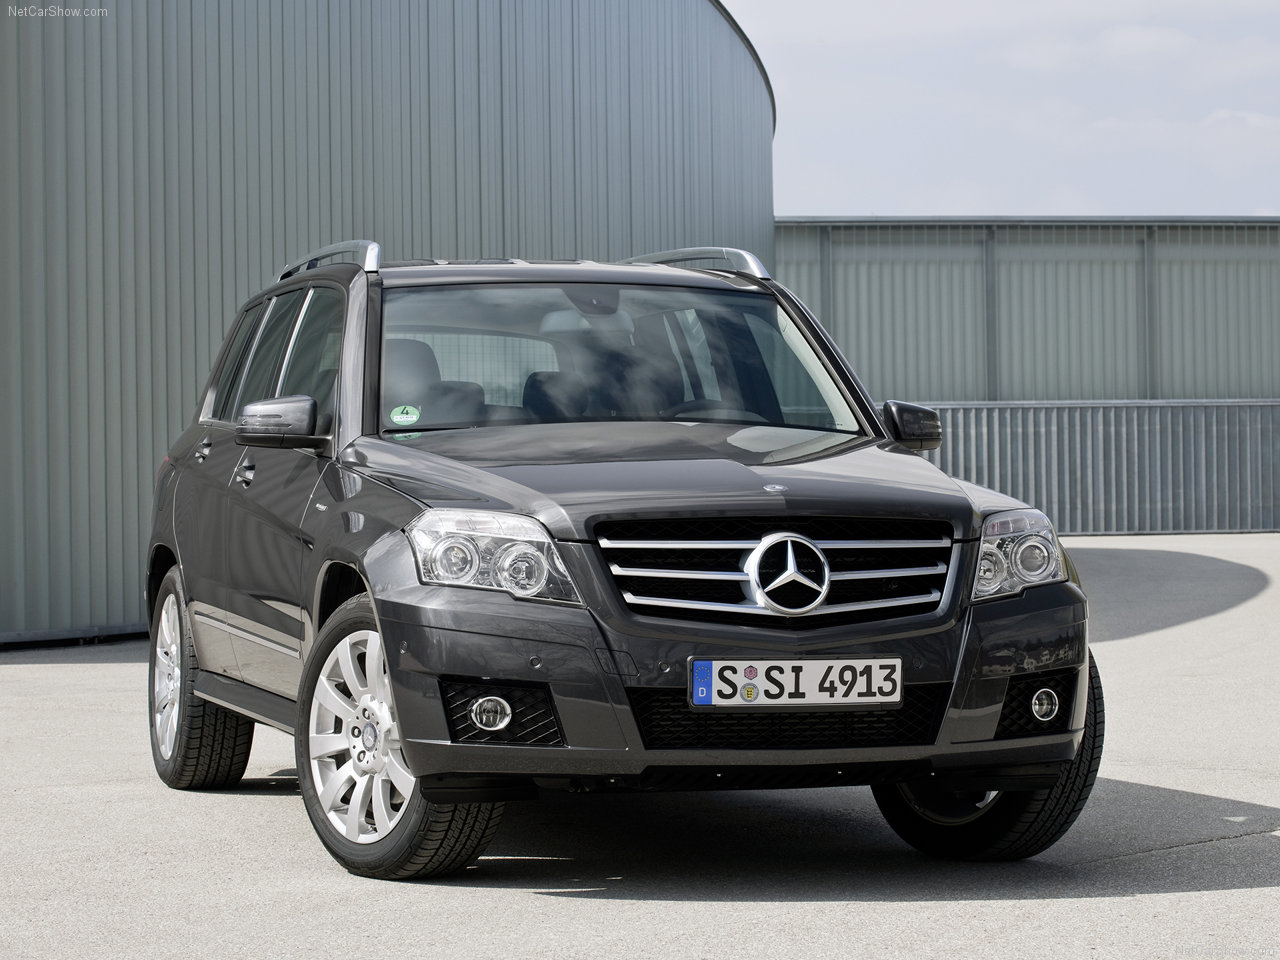 2010 mercedes benz glk class mercedes benz cars for 2010 mercedes benz glk